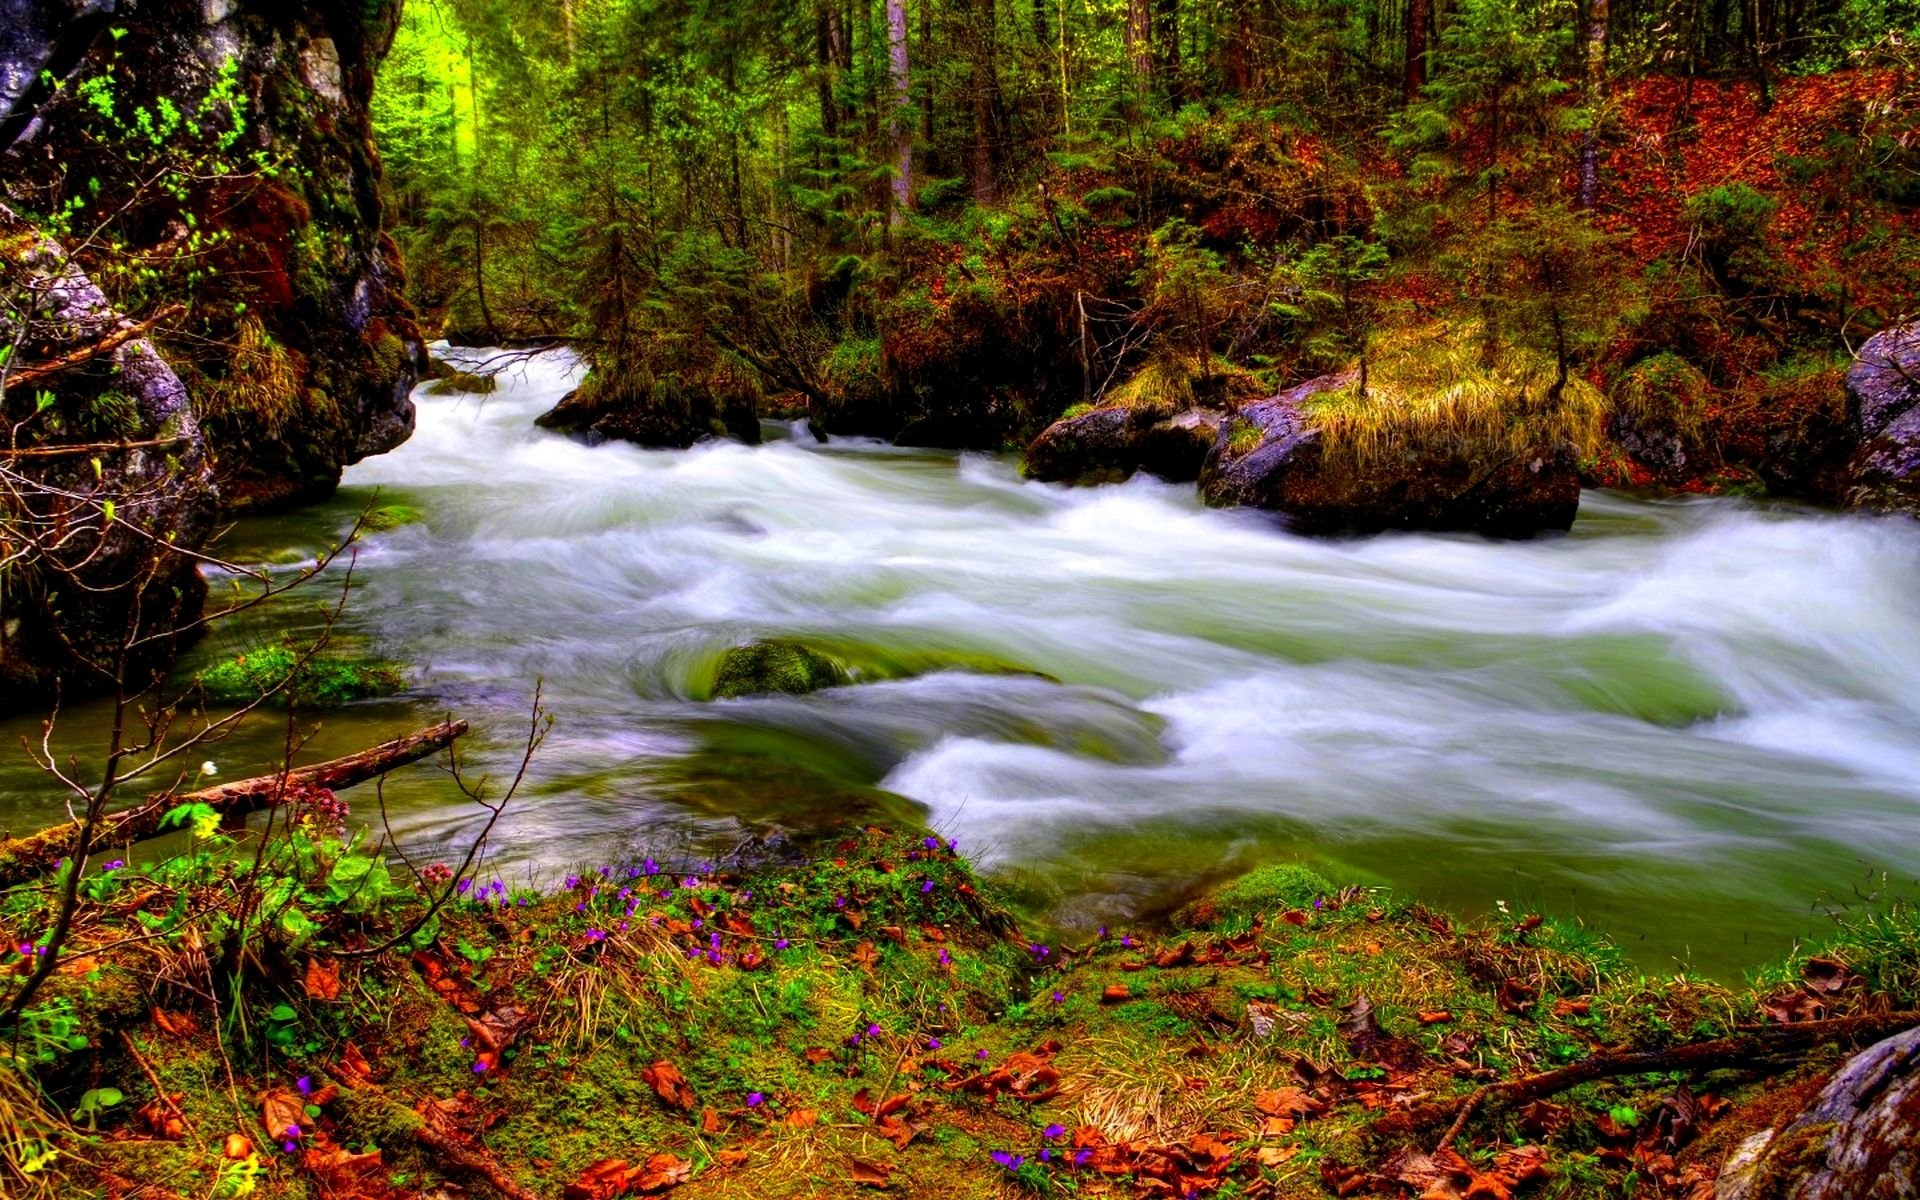 Kuang Si Falls Hd Wallpaper 1920 Stream In Autumn Forest Hd Wallpaper Background Image